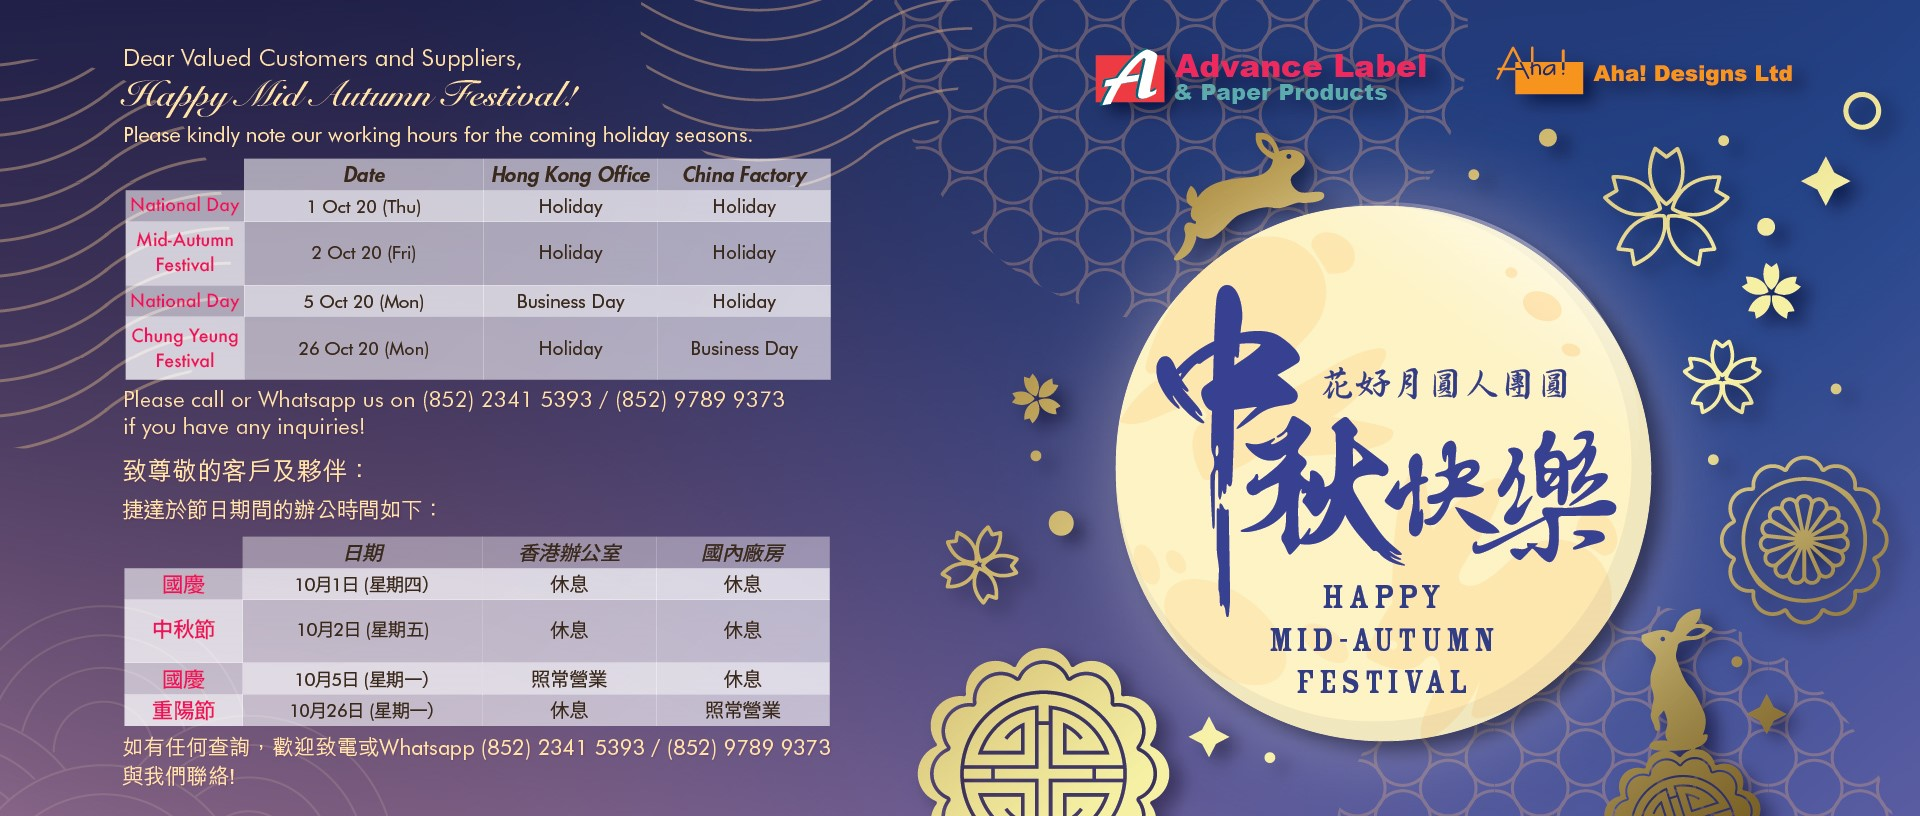 Mid-Autumn Festival & National Day Greetings from Advance Label Limited